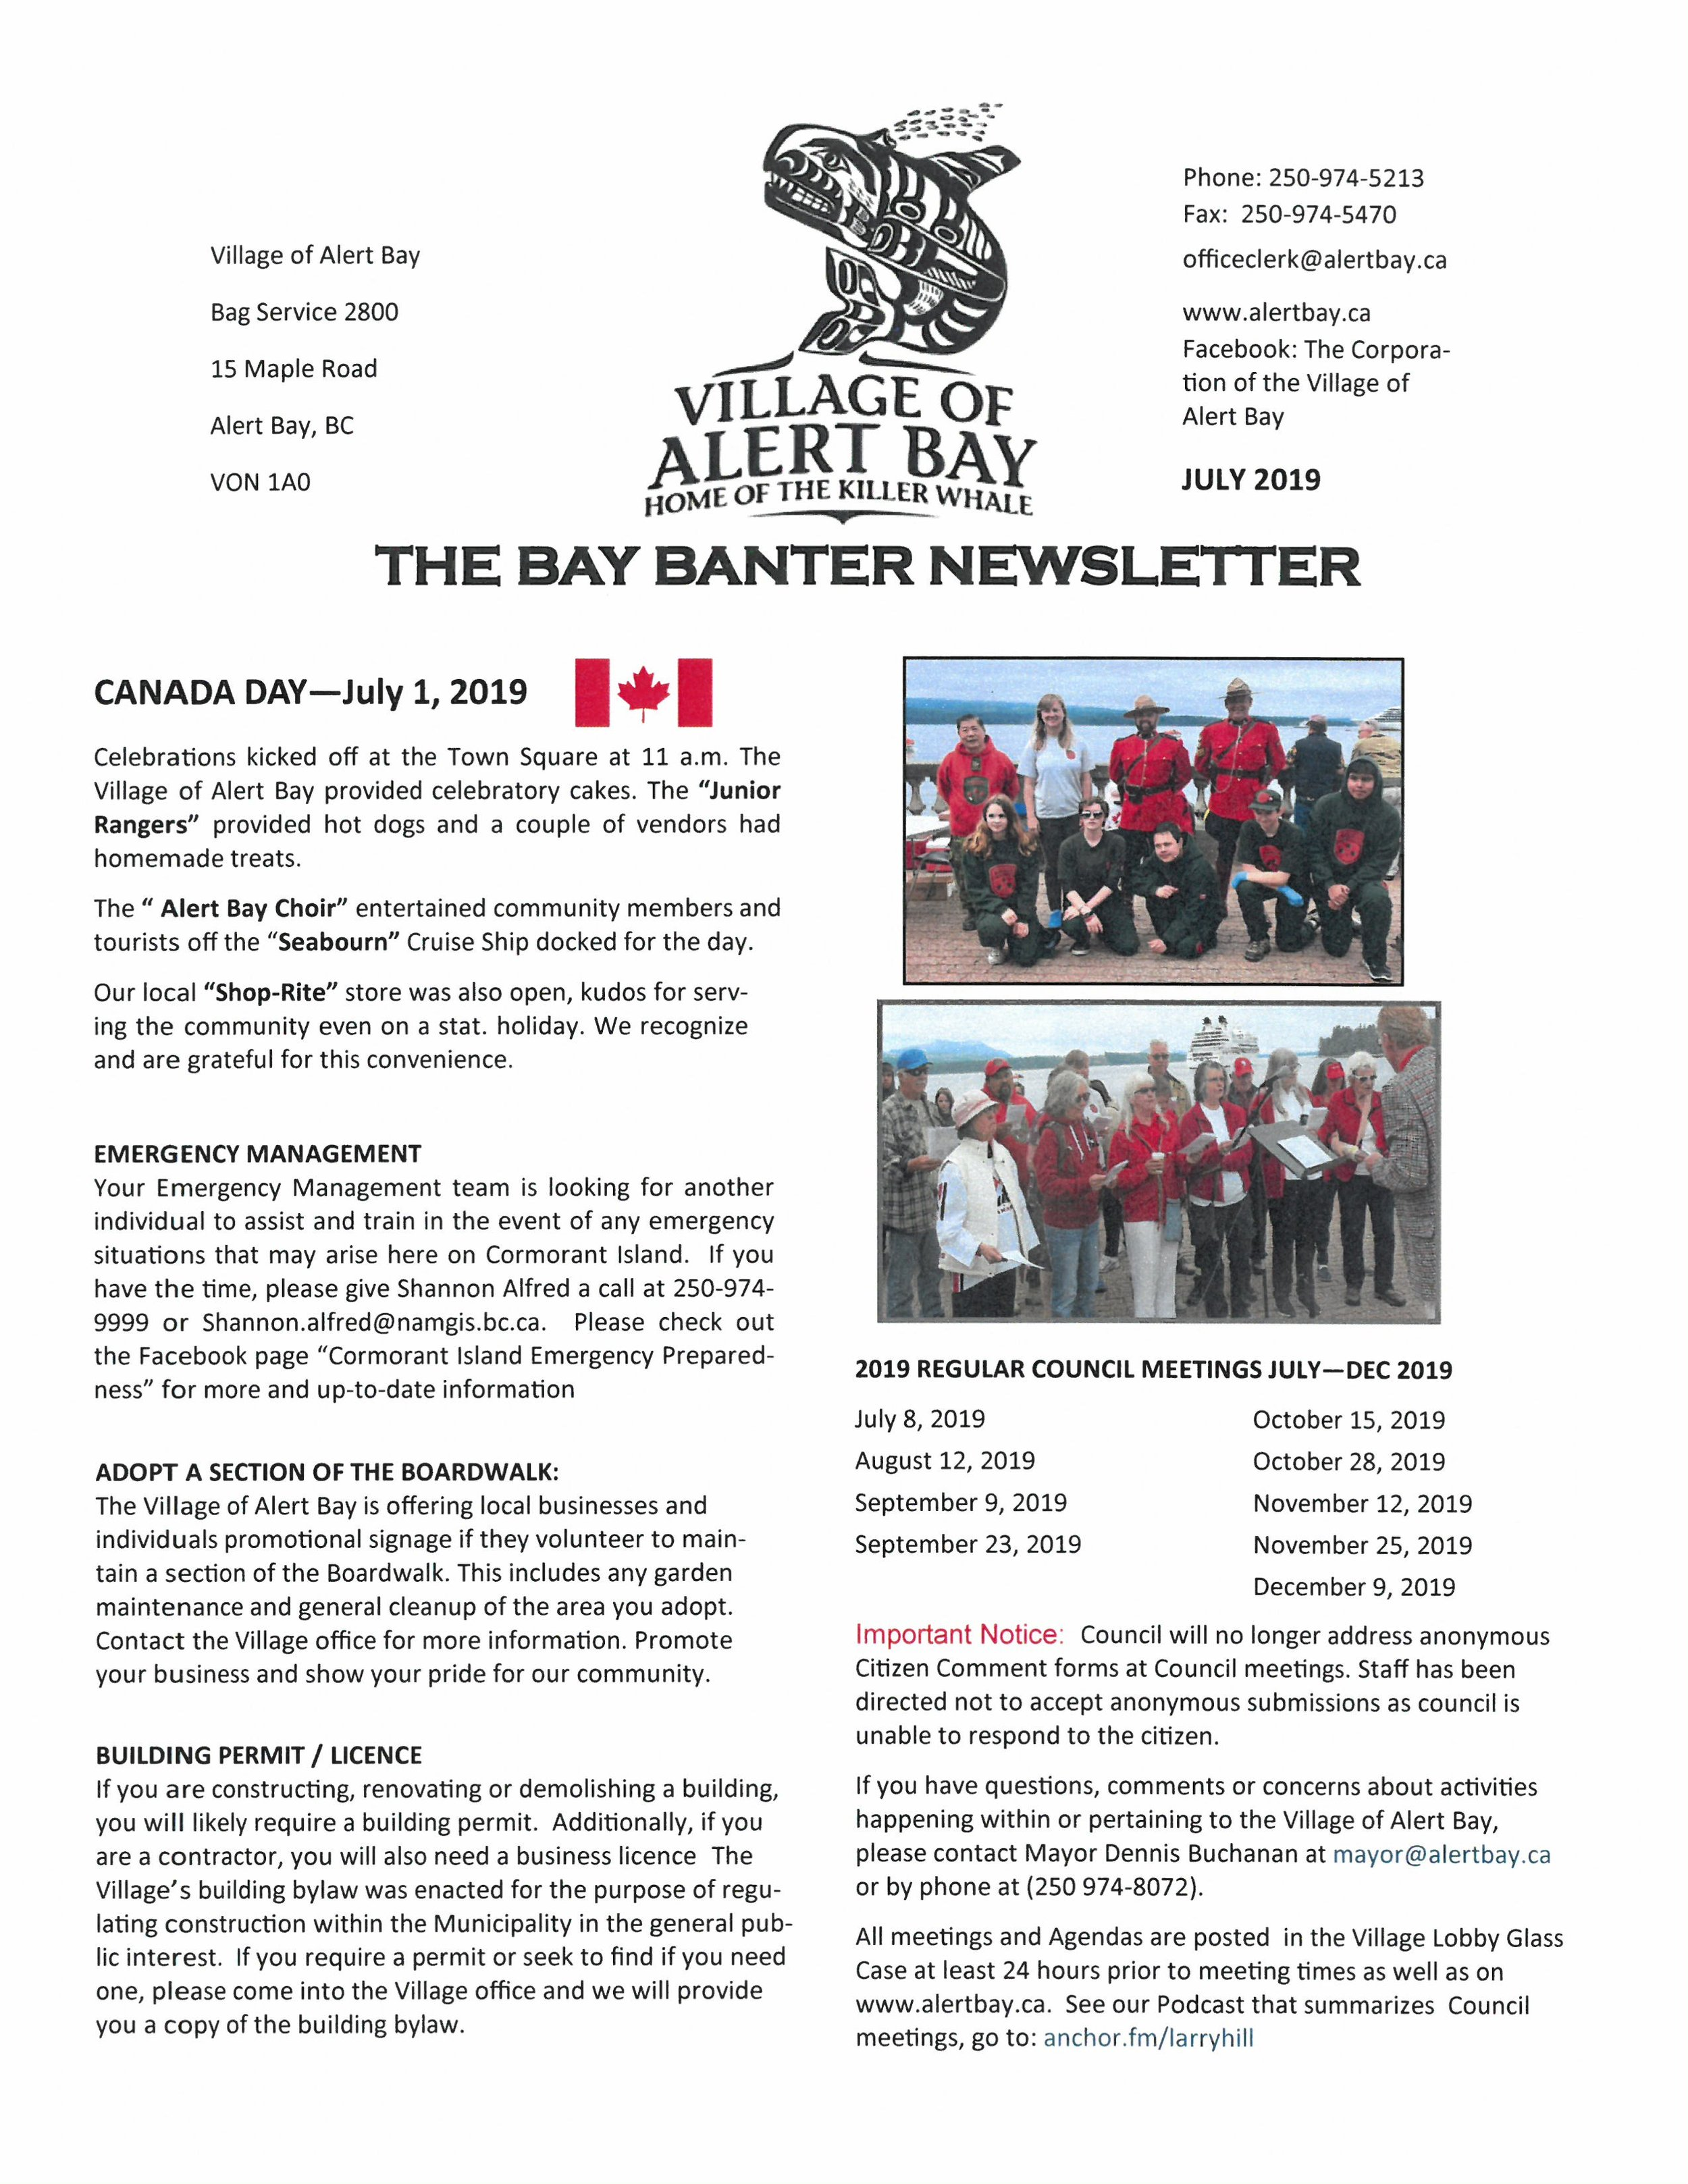 The Bay Banter Newletter July 2019 page 1.jpg